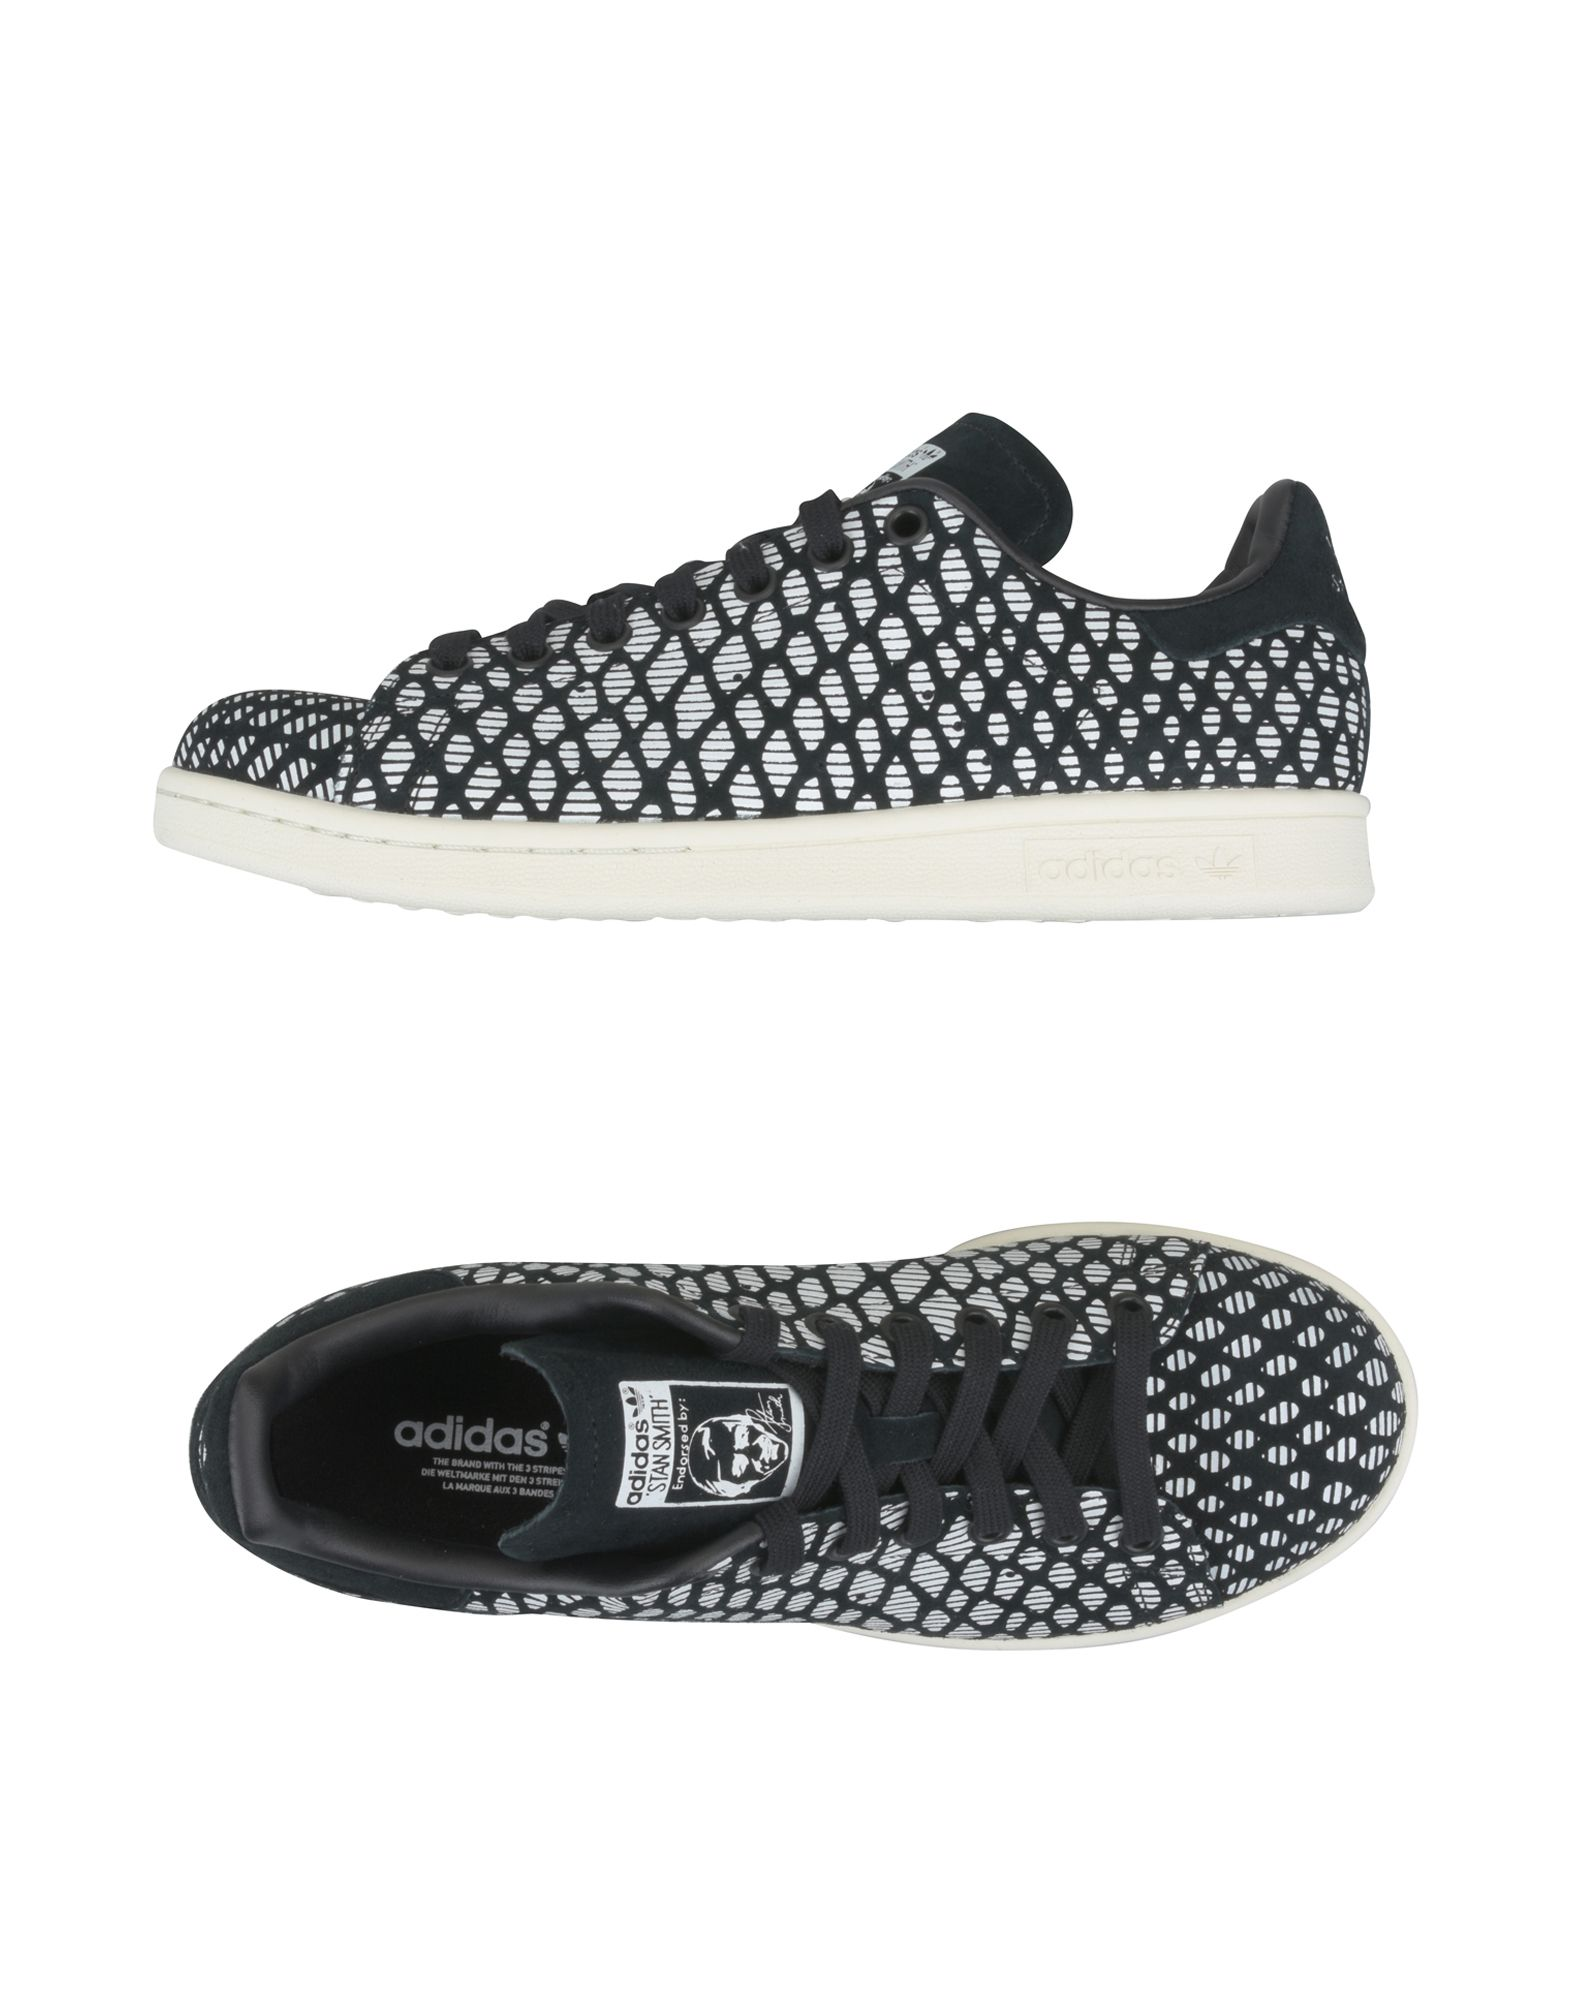 Sneakers Adidas Originals Adidas Stansmith - Donna - Acquista online su